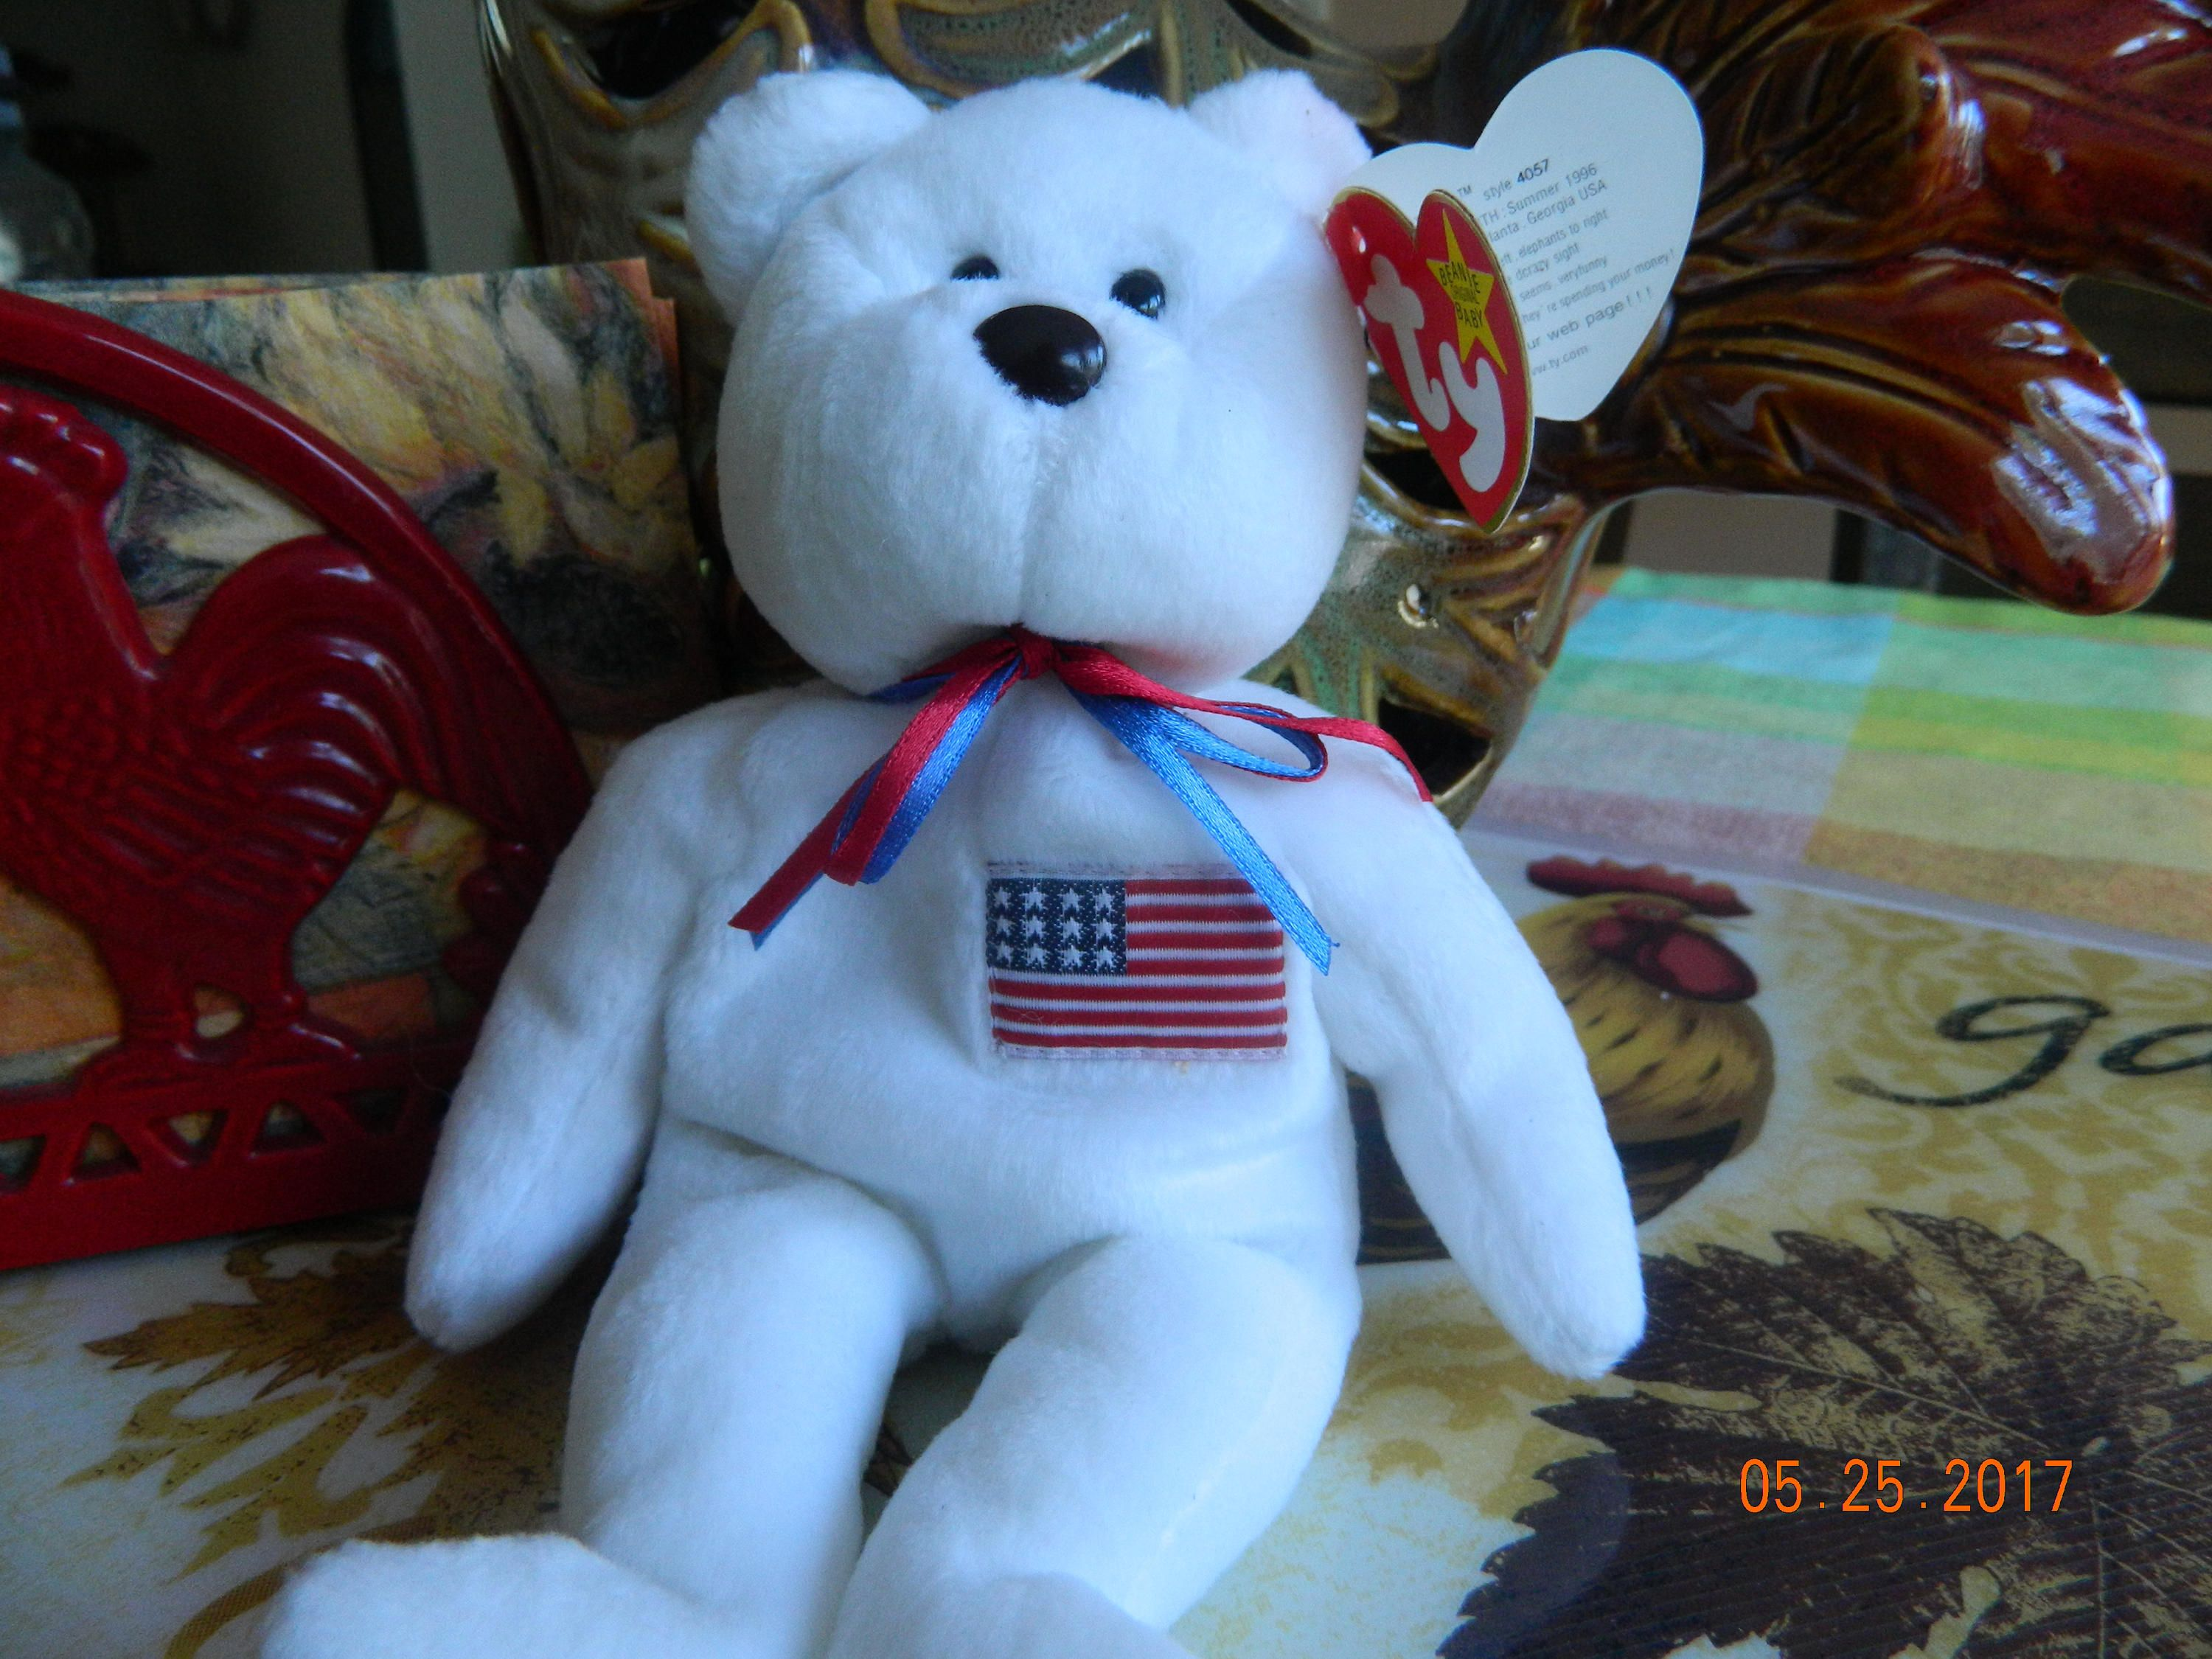 Libearty Beanie Baby with